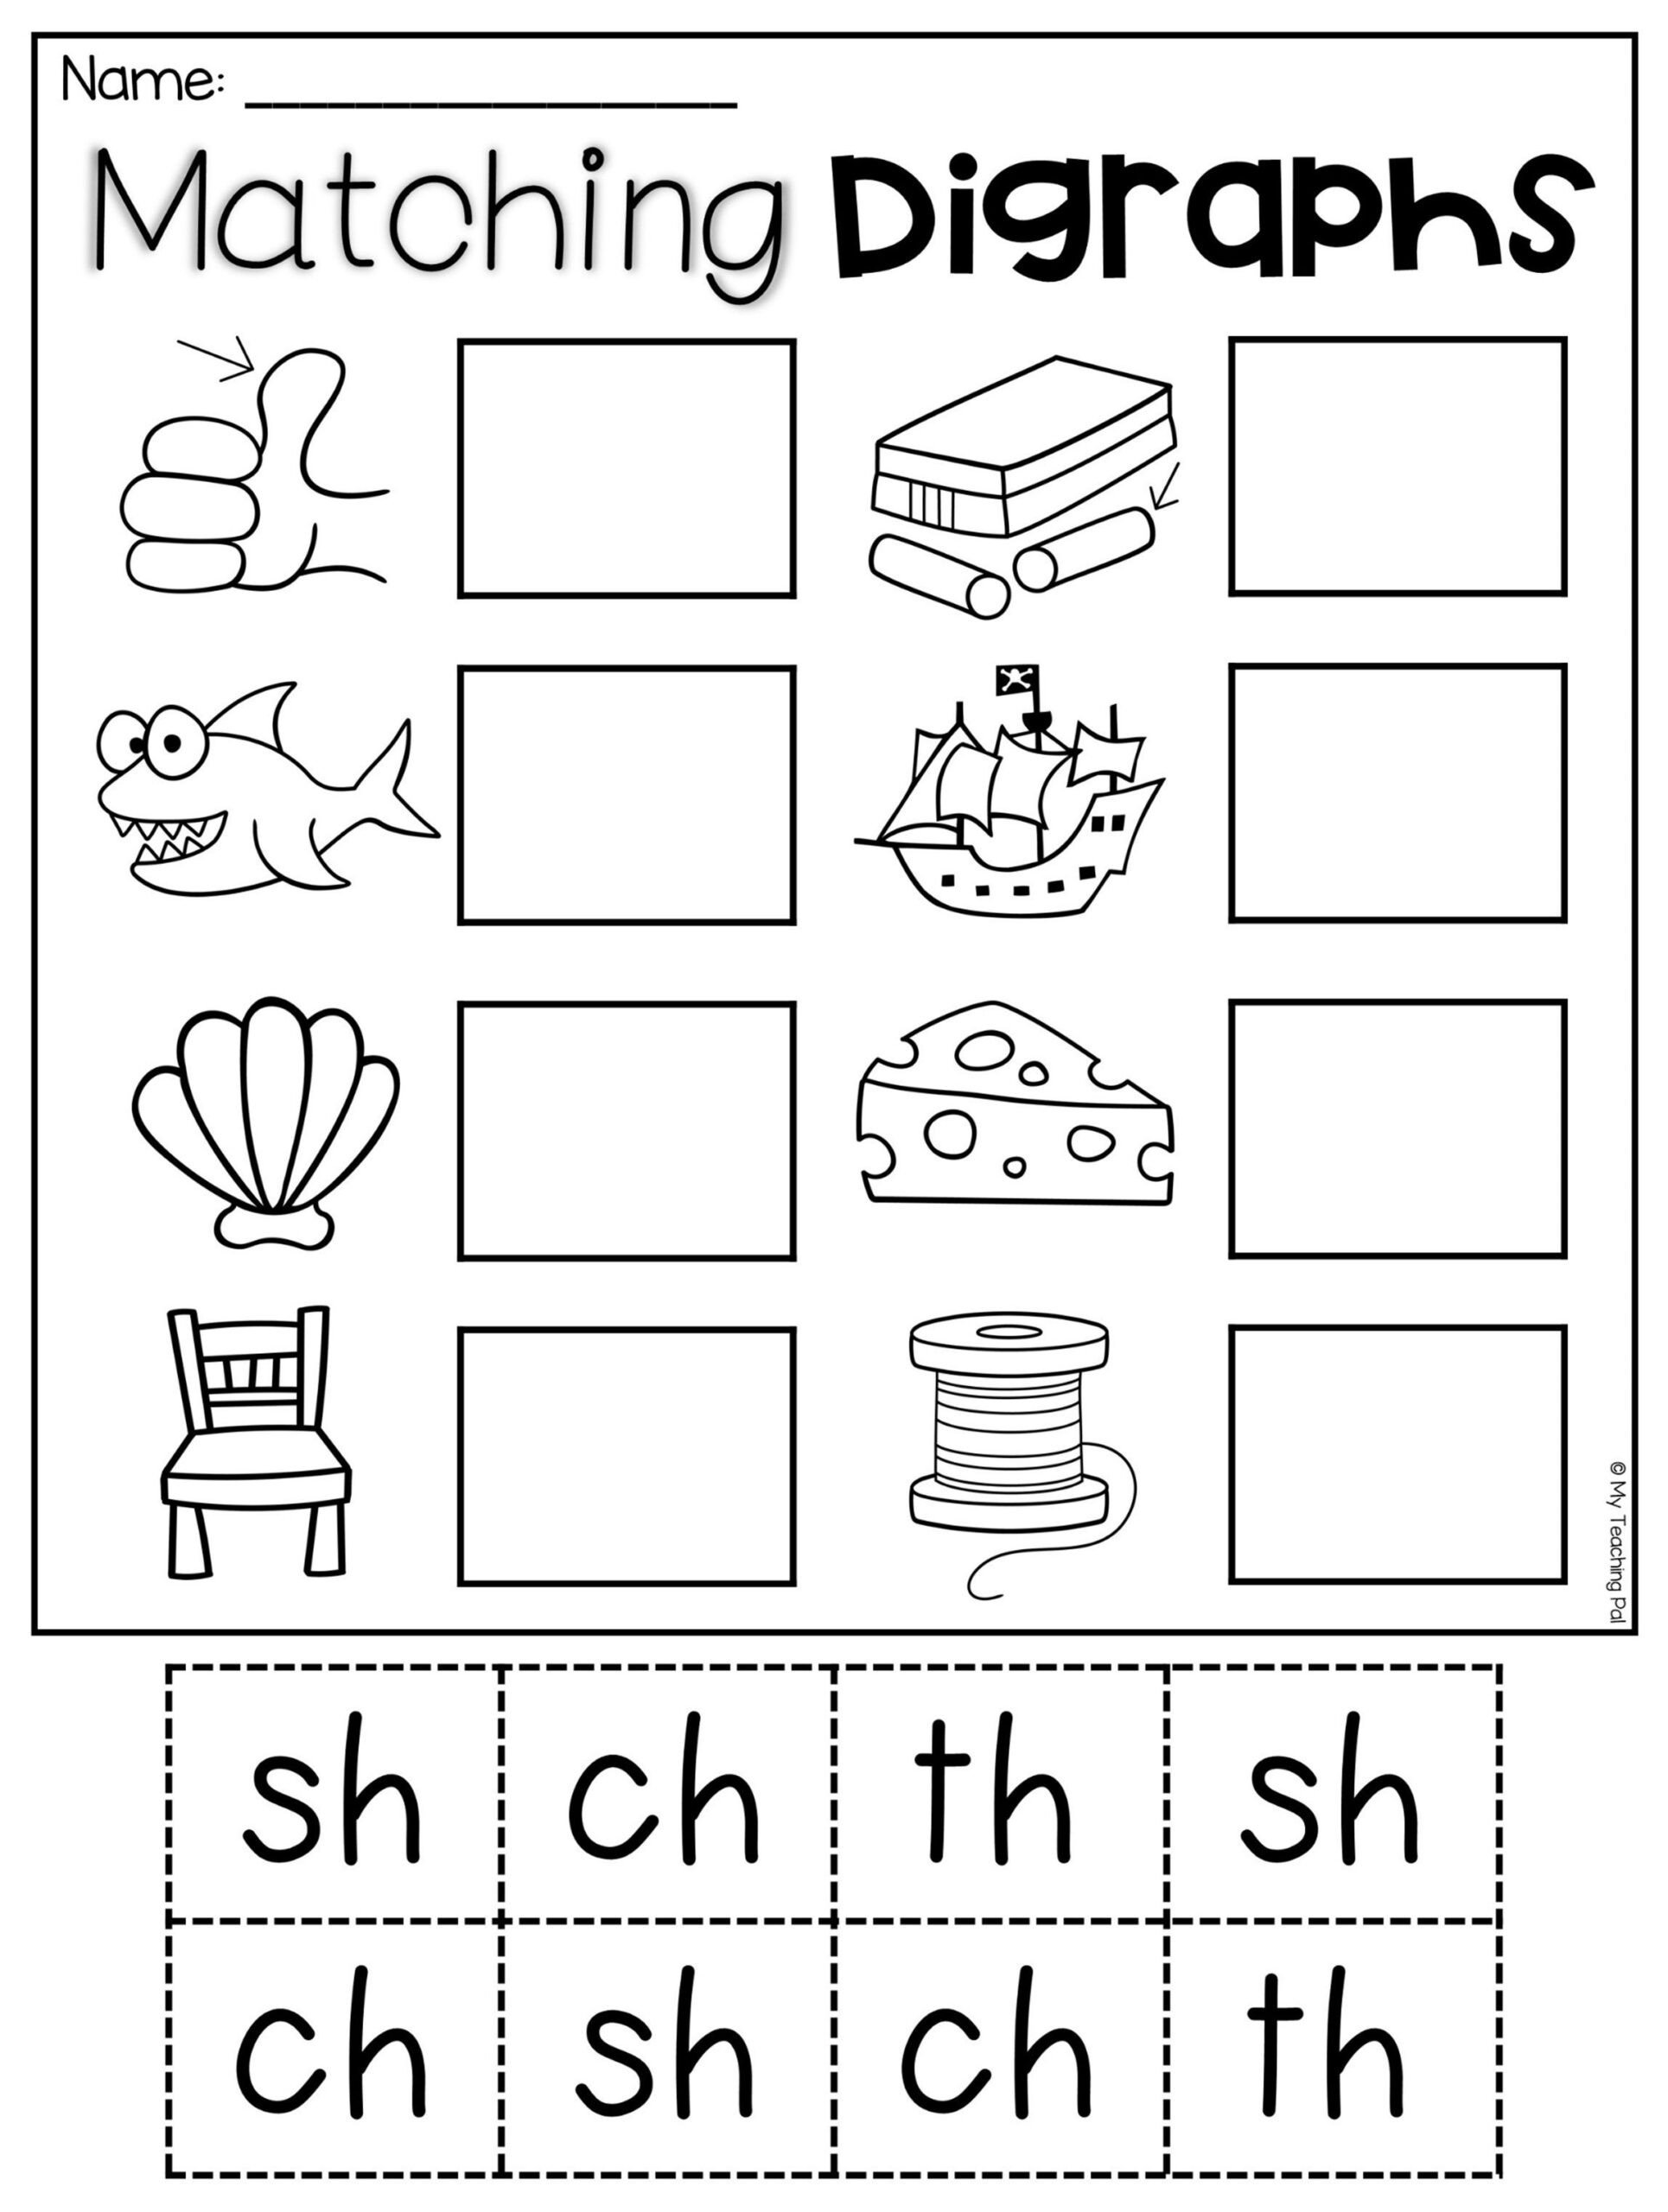 Adding 1 Worksheets Kindergarten Digraph Worksheet Packet Ch Th Wh Ph Digraphs Worksheets